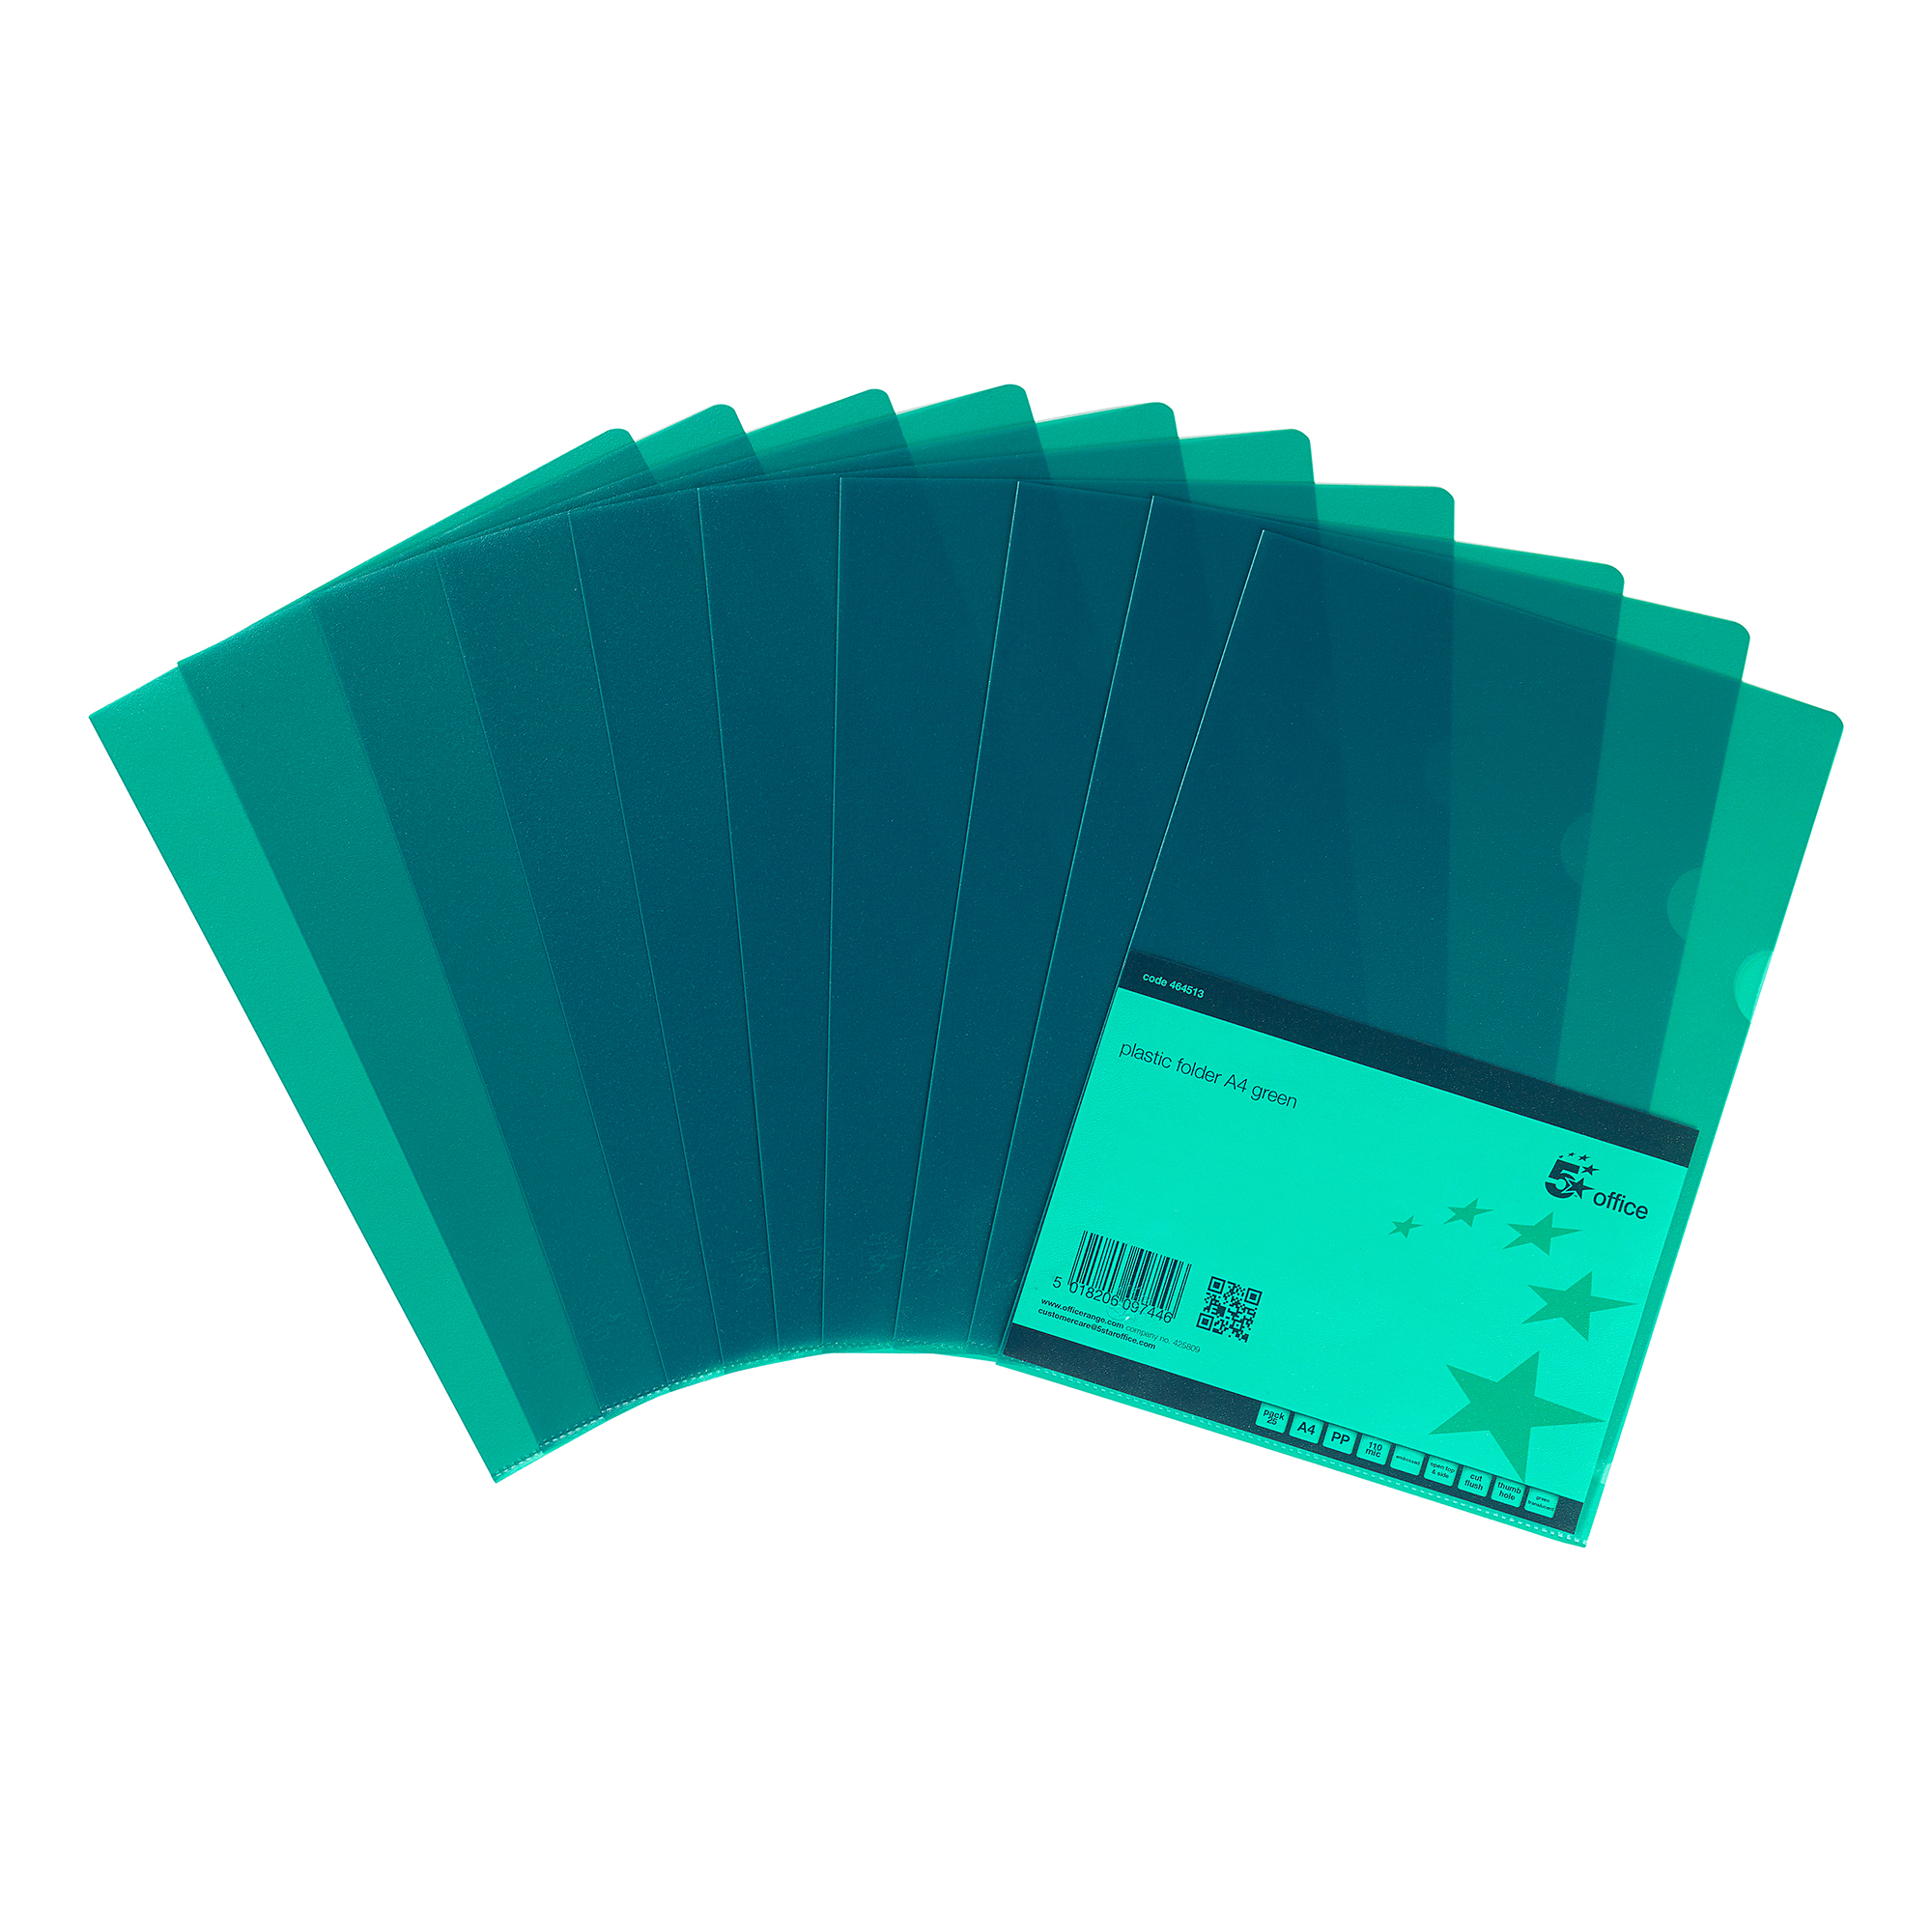 Clip Files 5 Star Office Folder Embossed Cut Flush Polypropylene Copy-safe Translucent 110 Micron A4 Green Pack 25